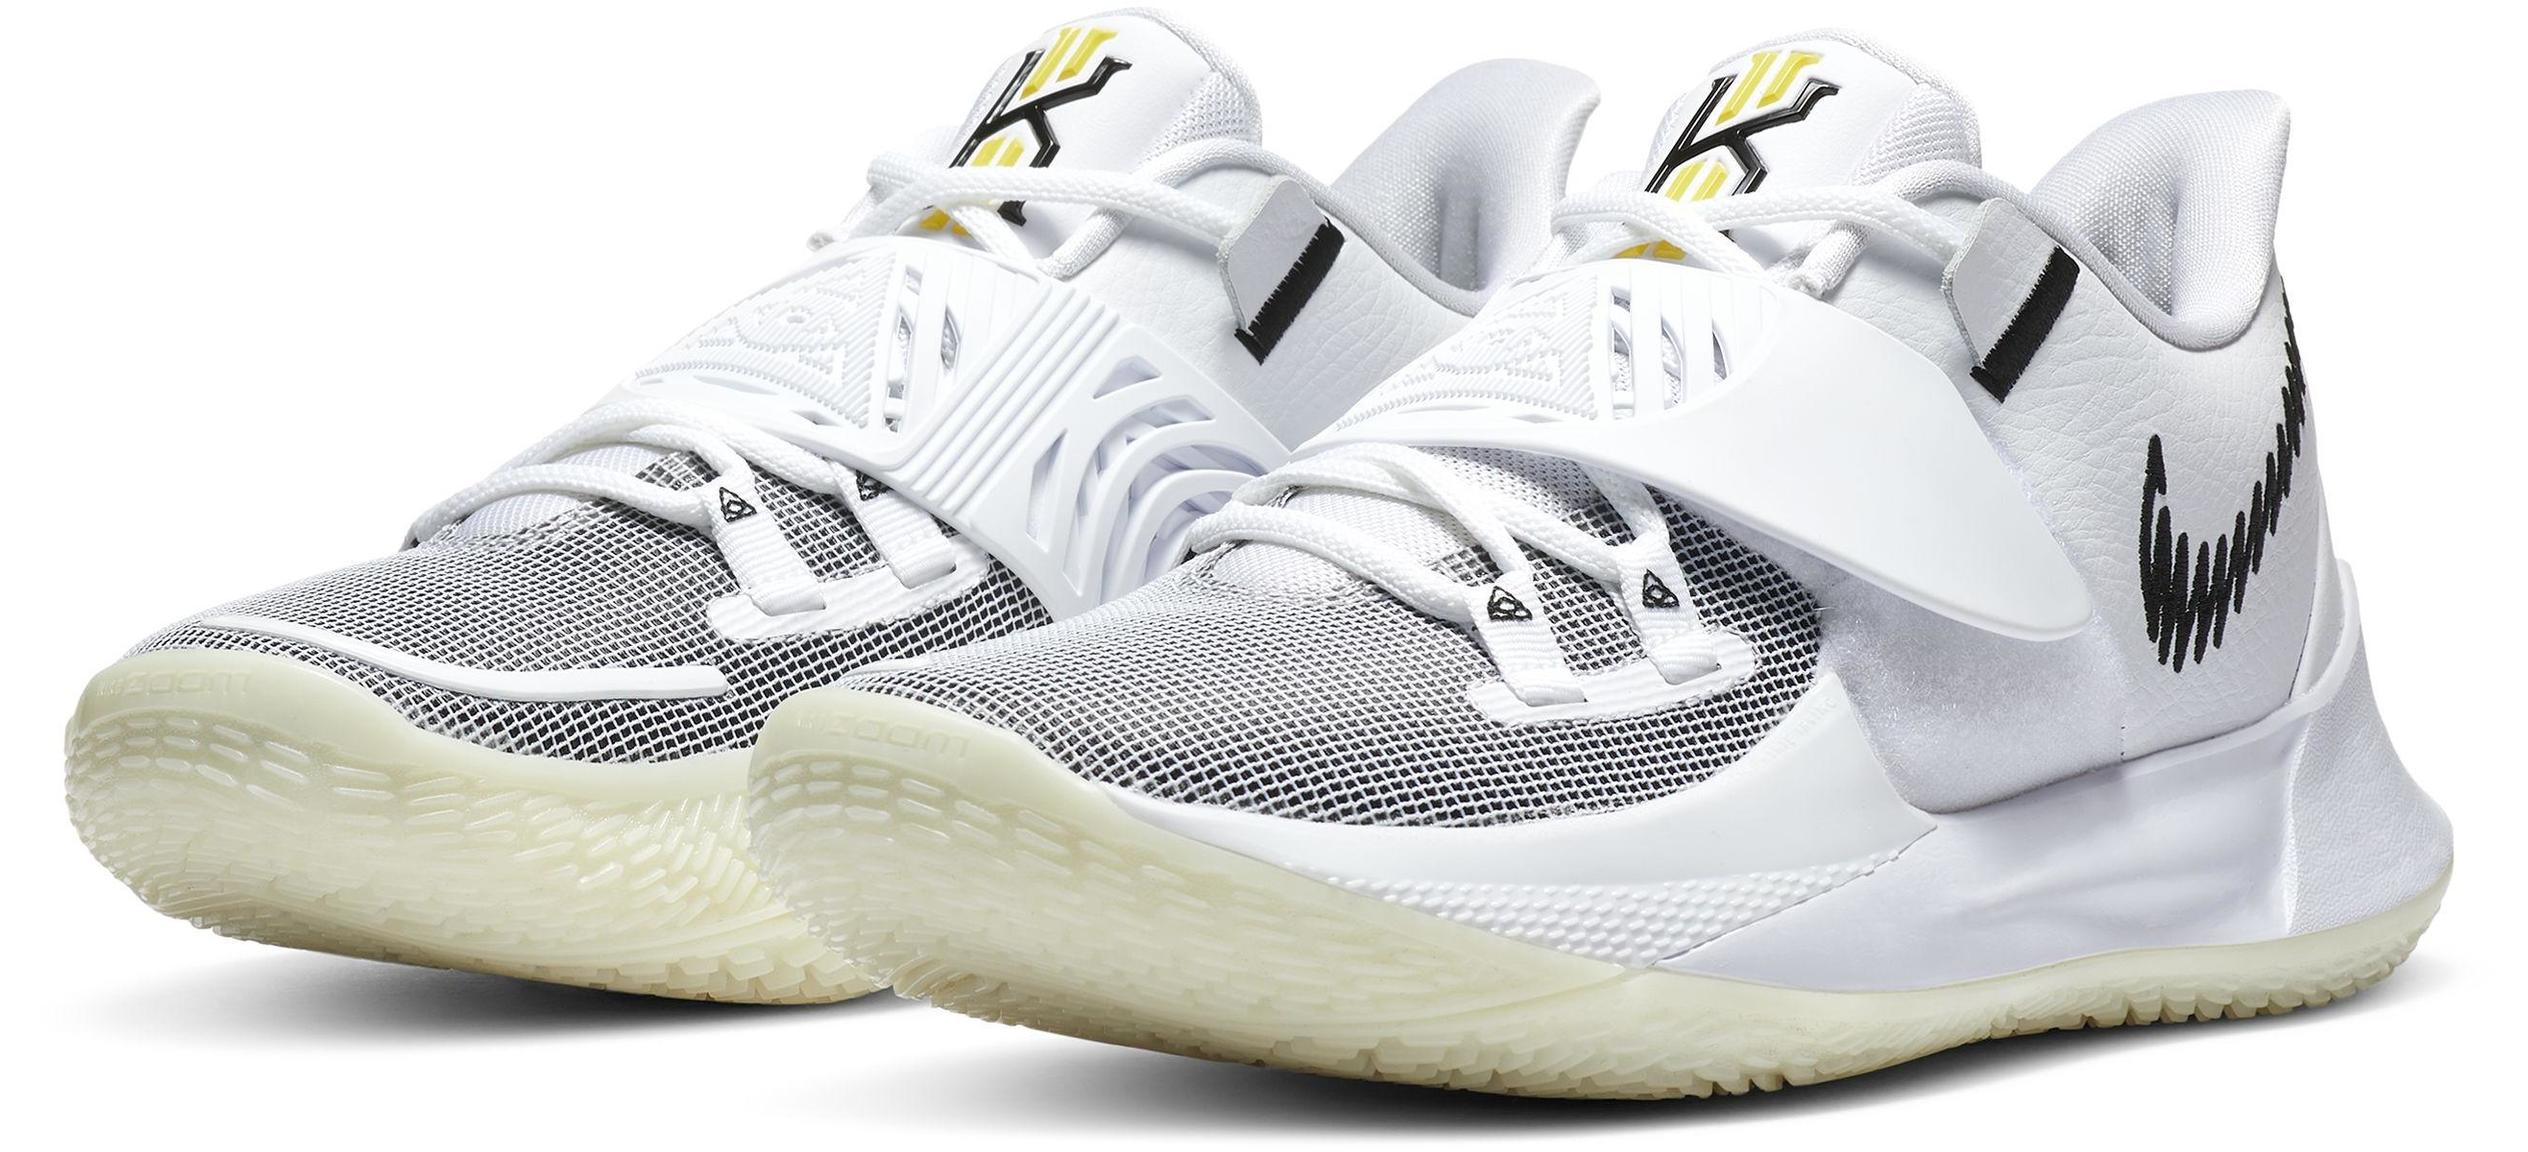 Kyrie Low 3 Eclipse White/Black